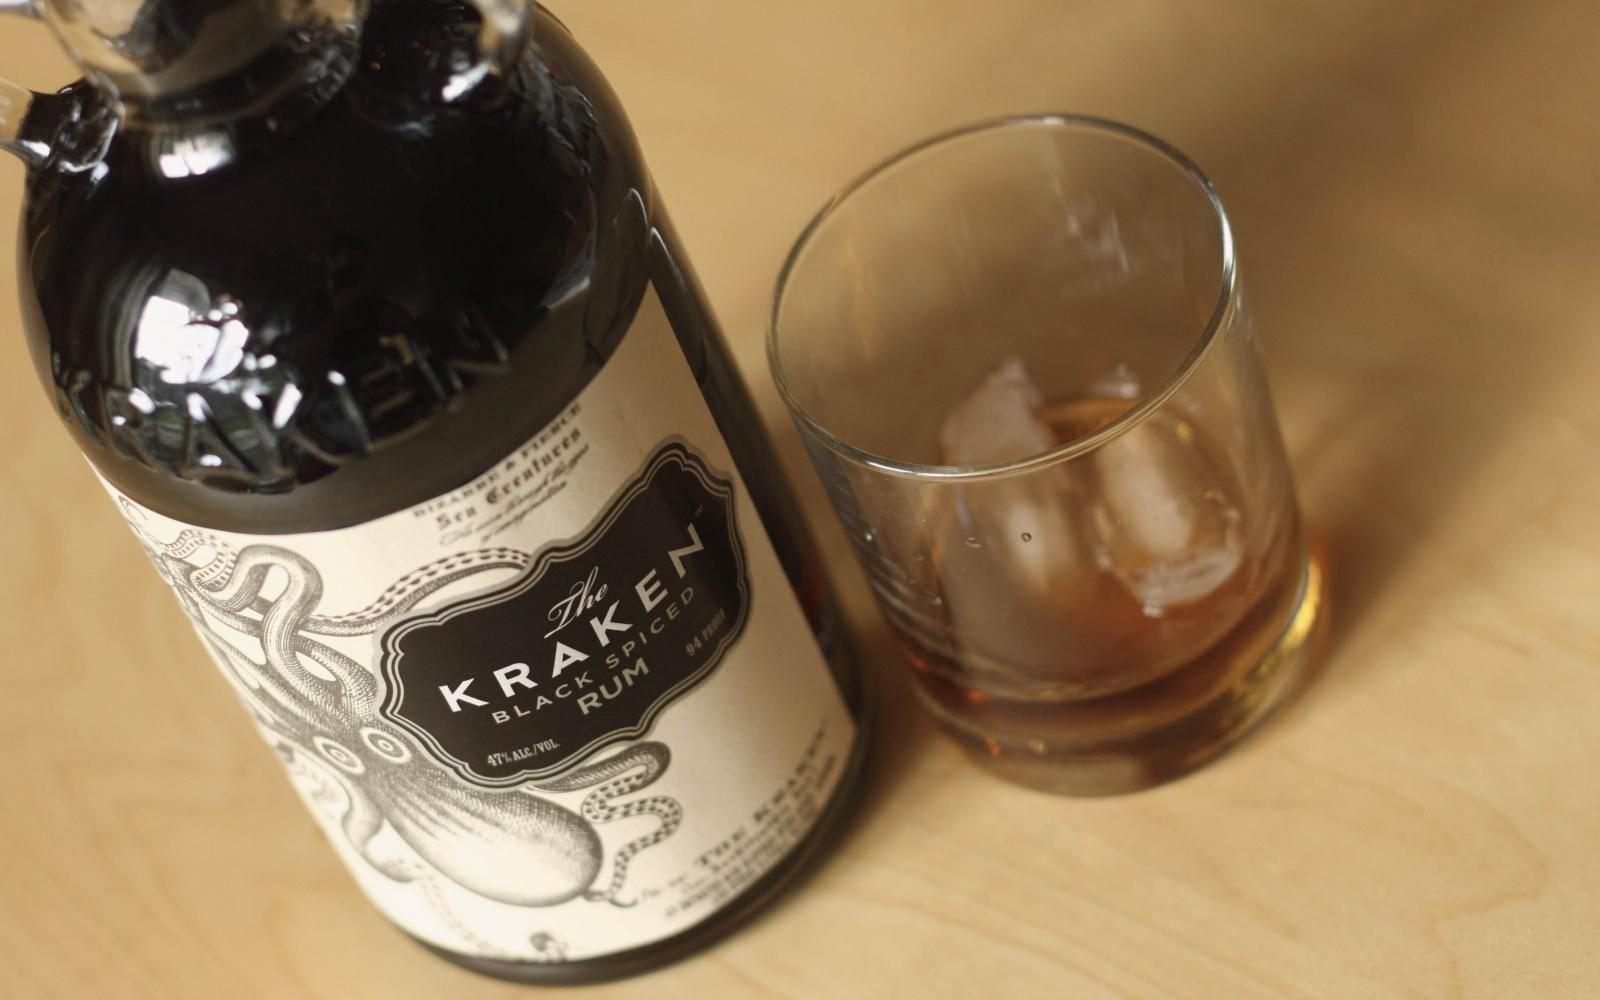 Kraken Rum - Photo: Flickr/ Mike McCune